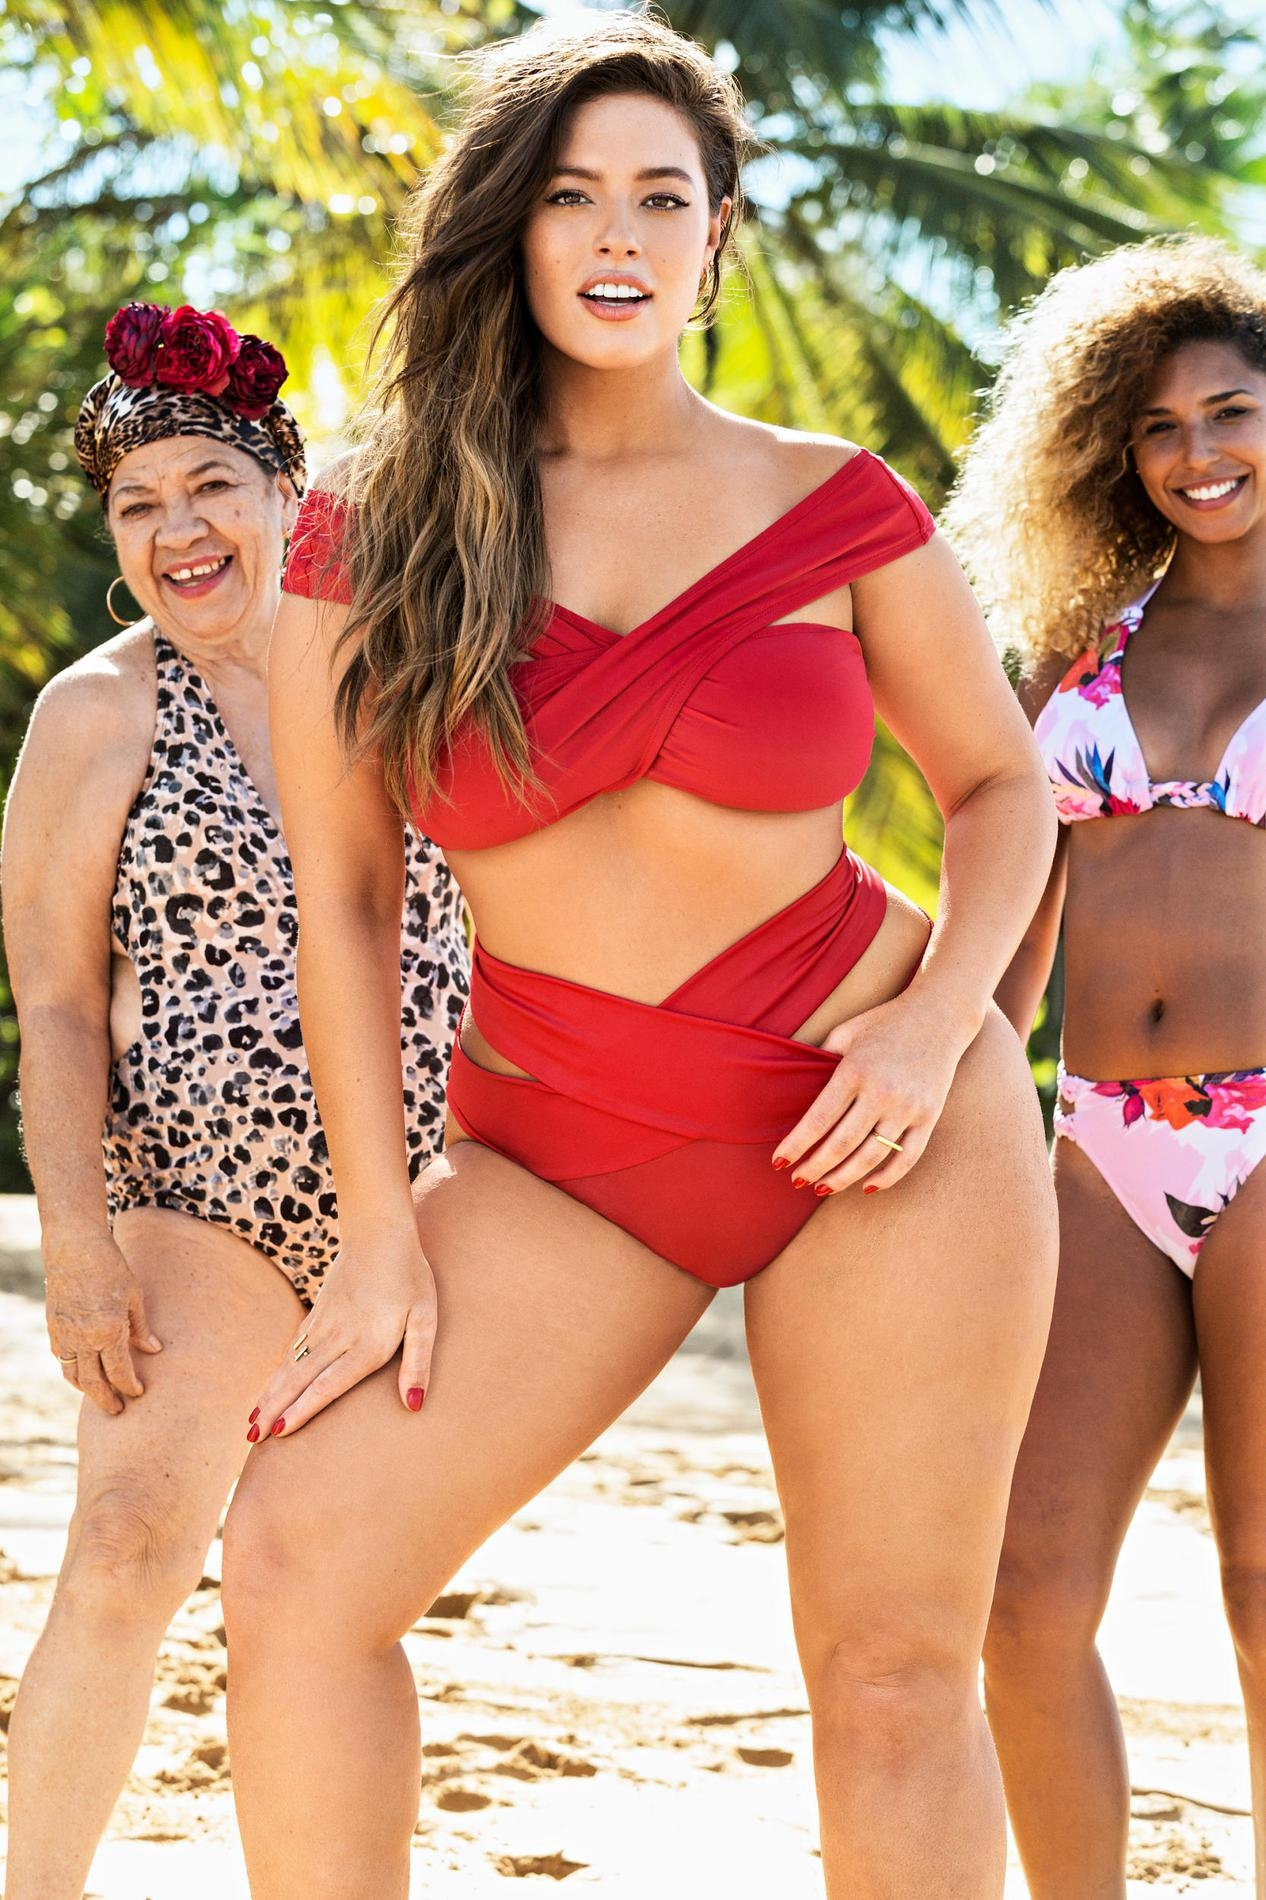 Sin miedo a la celulitis, Ashley Graham